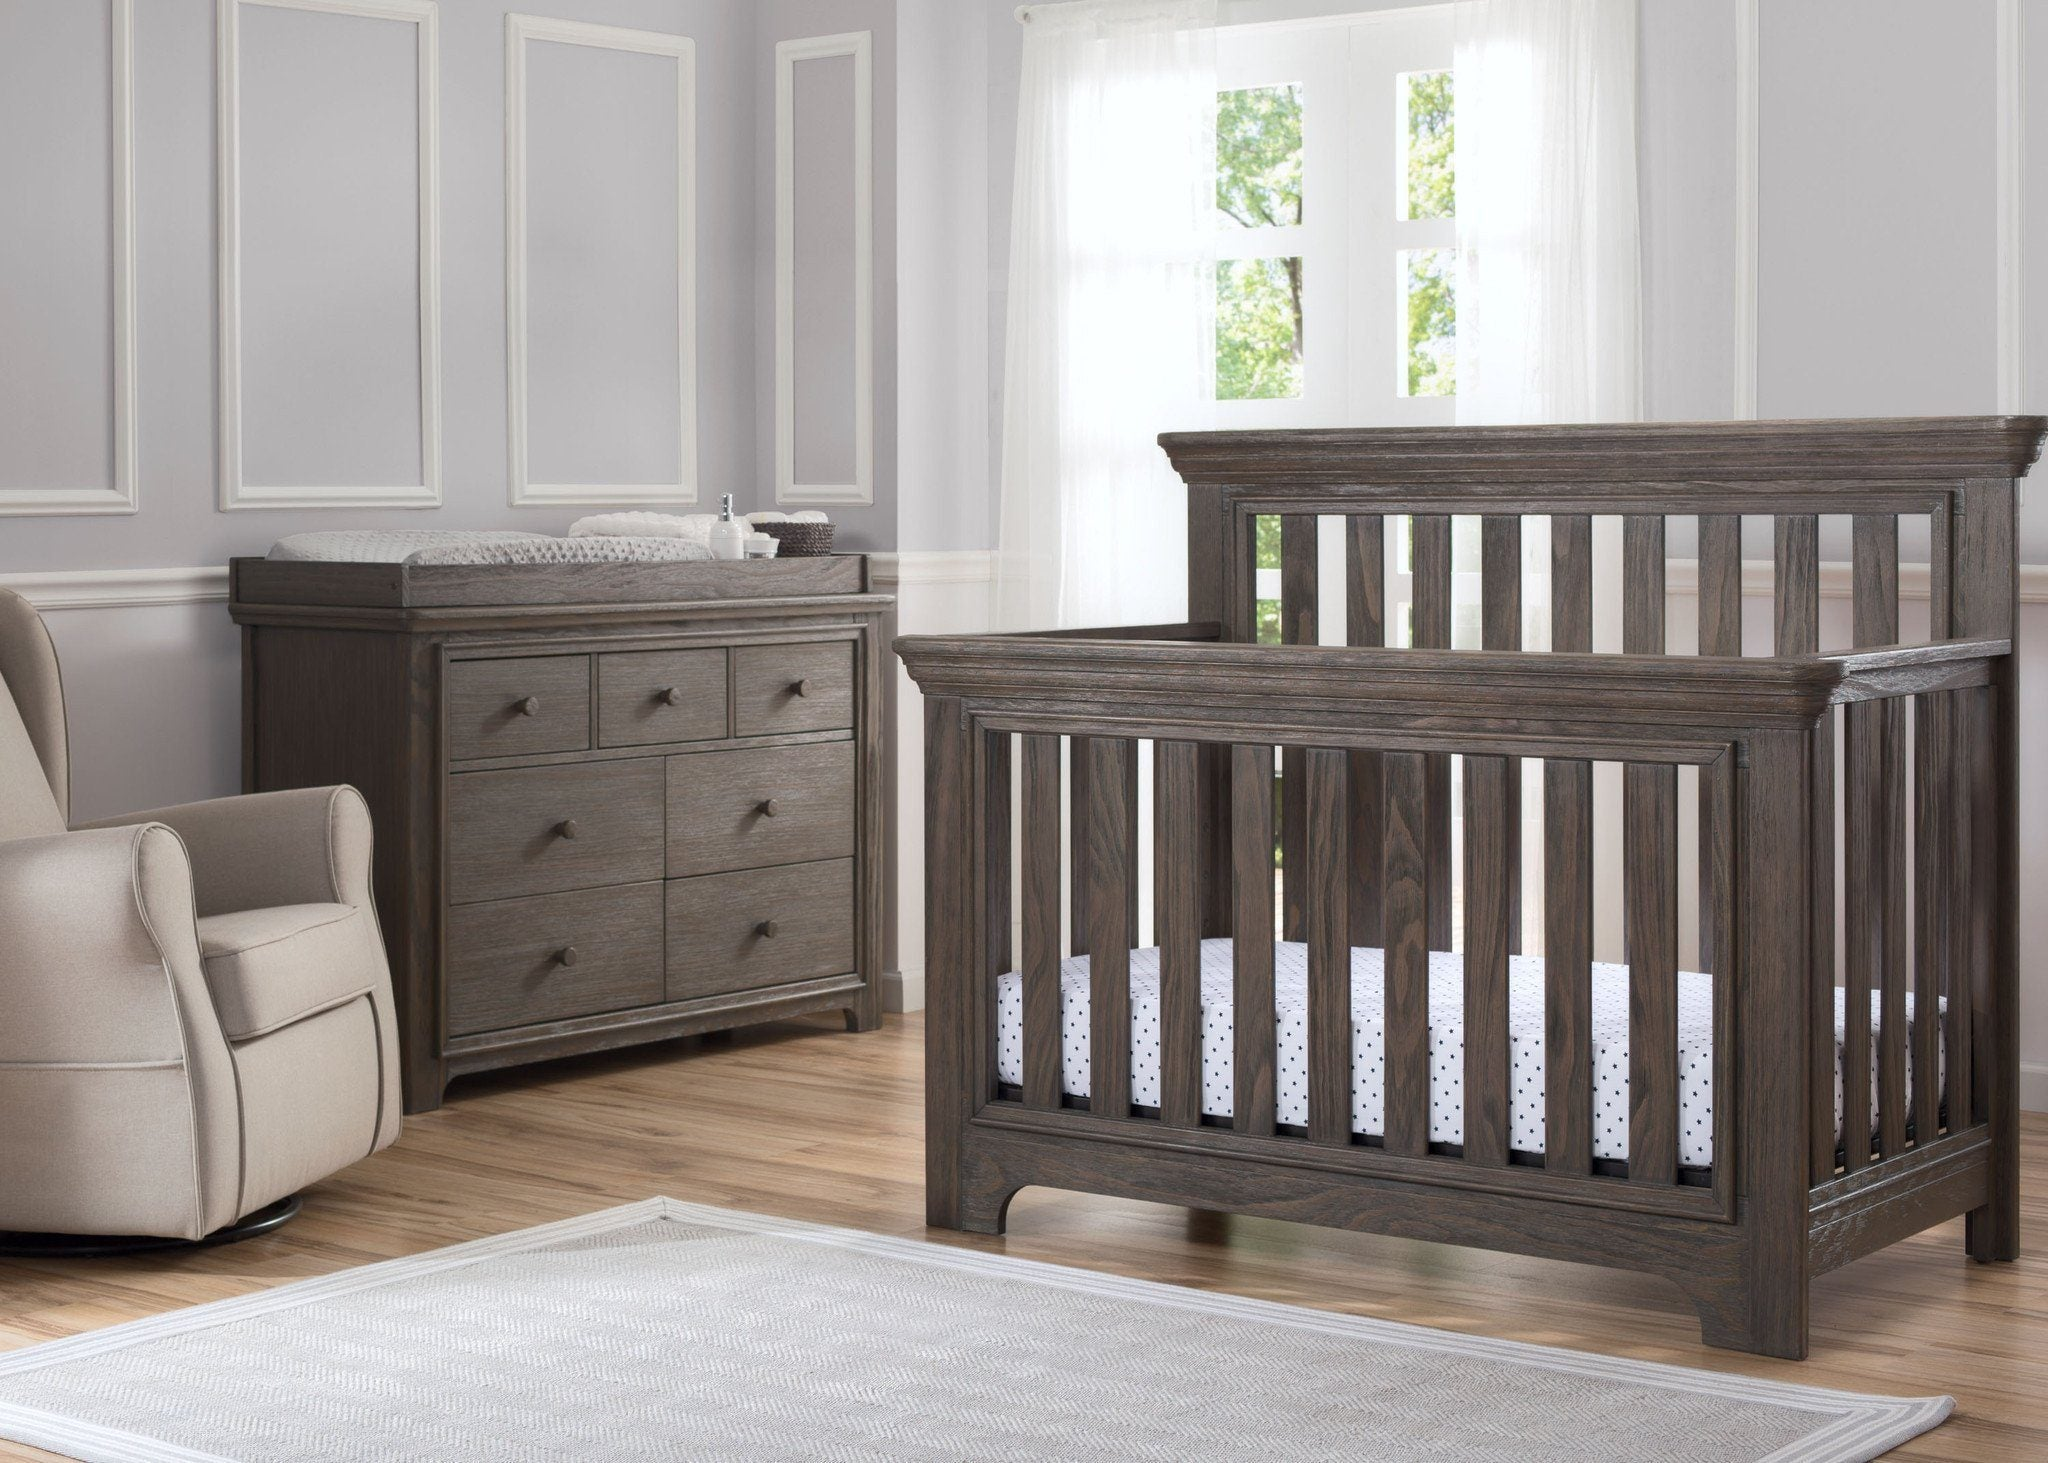 Serta Rustic Grey 084 Langley 4 In 1 Crib Room View A1a